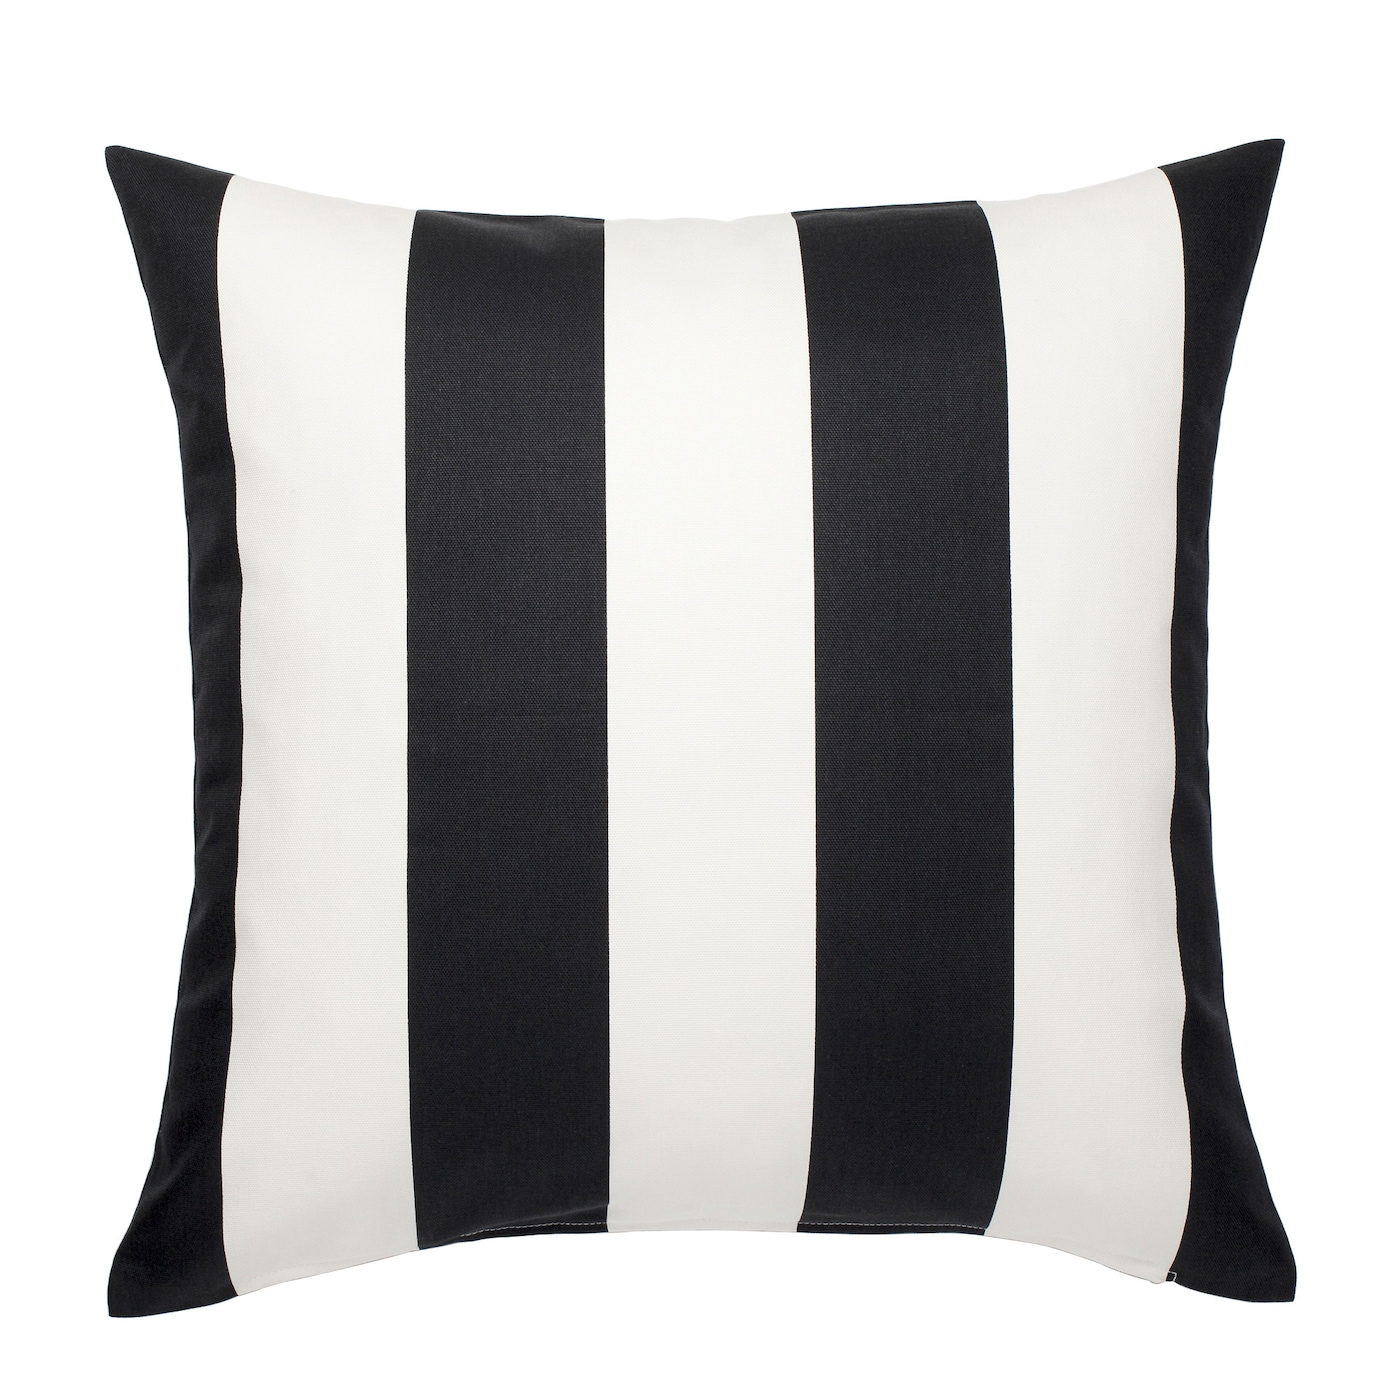 V…RGYLLEN Cushion cover White black 50x50 cm IKEA